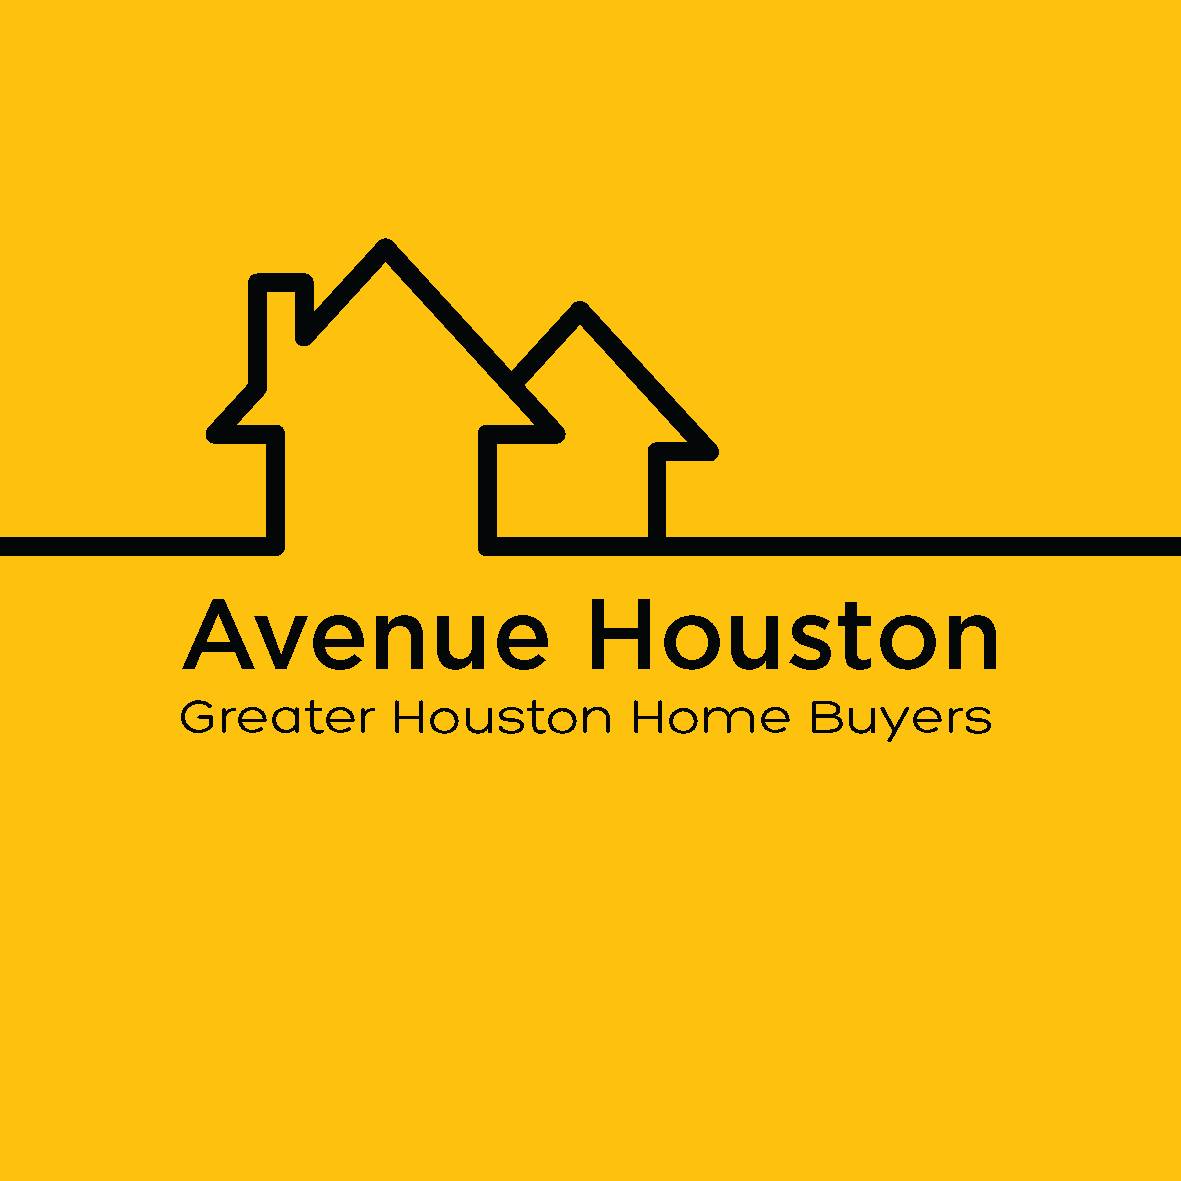 Avenue Houston Home Buyers